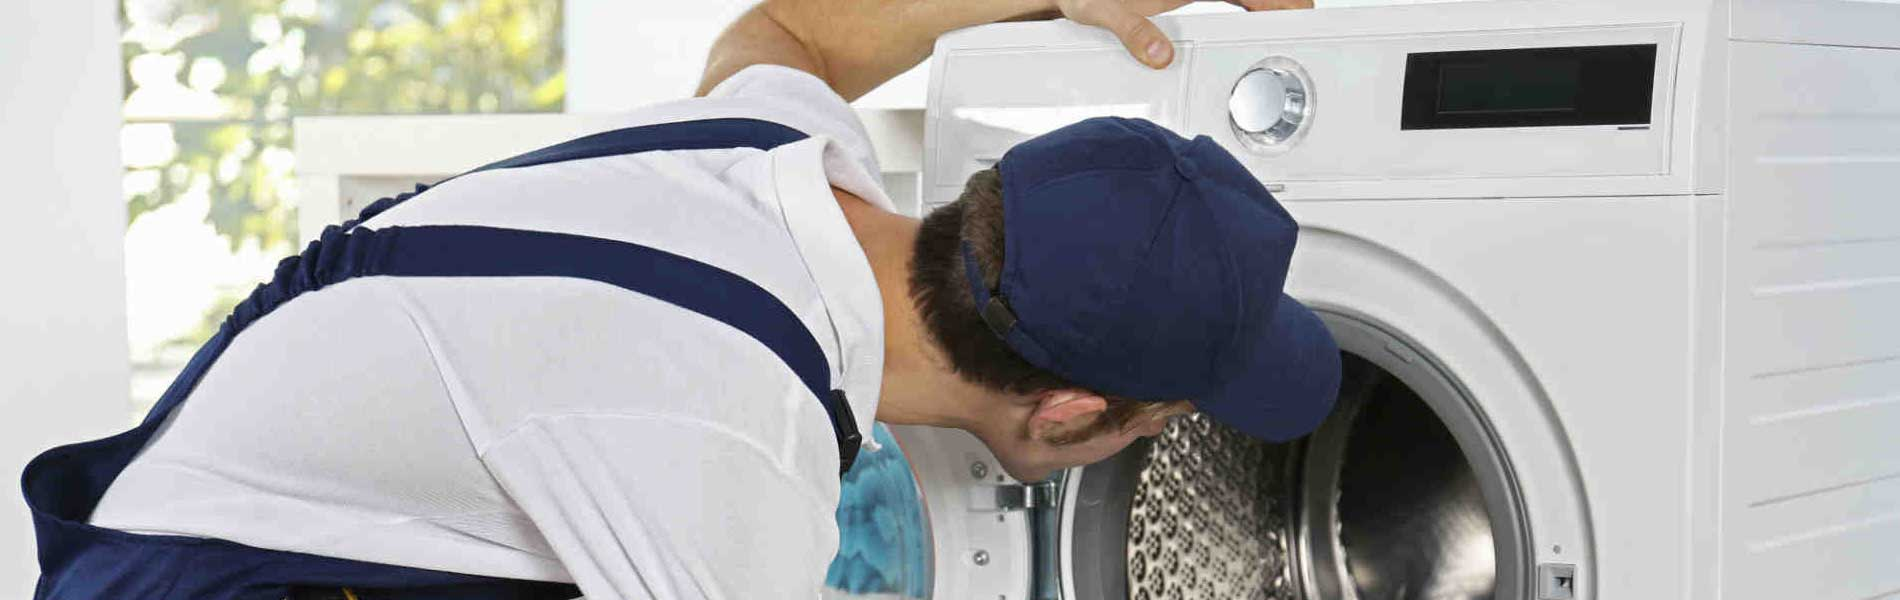 Godrej Washing Machine Service in Arumbakkam